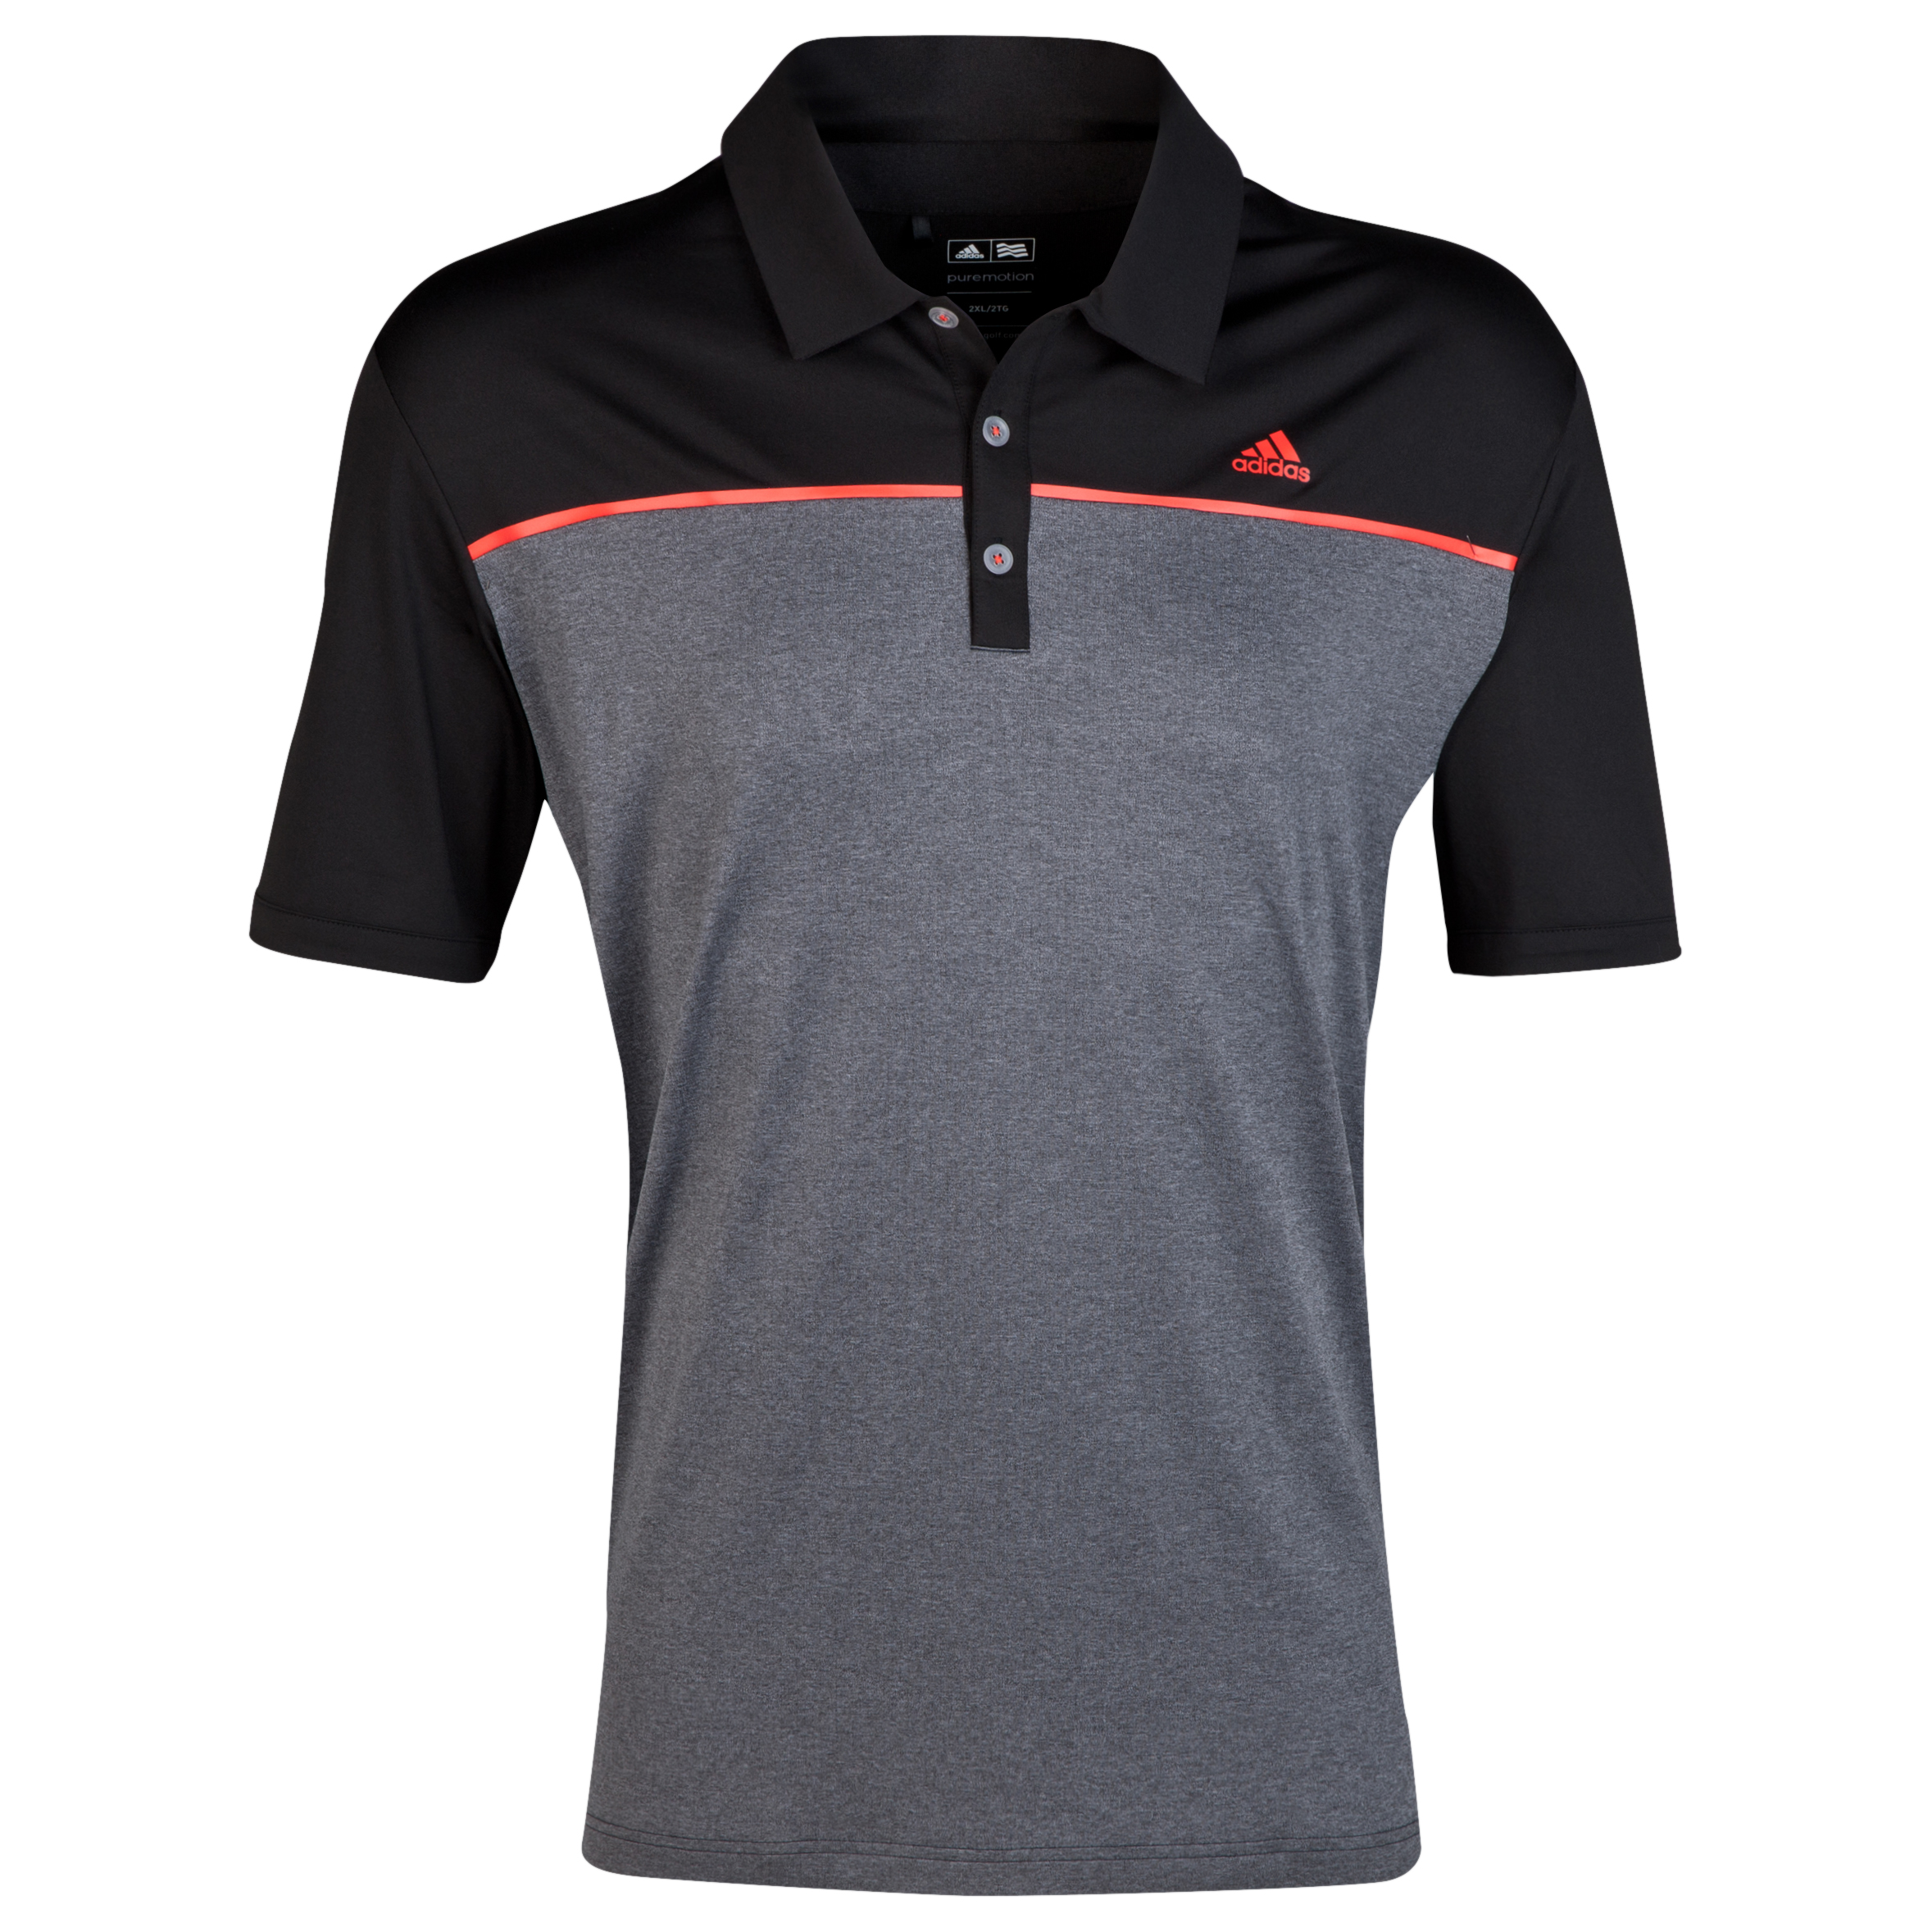 The 2014 Ryder Cup adidas ClimaLite Heather Block Polo Black